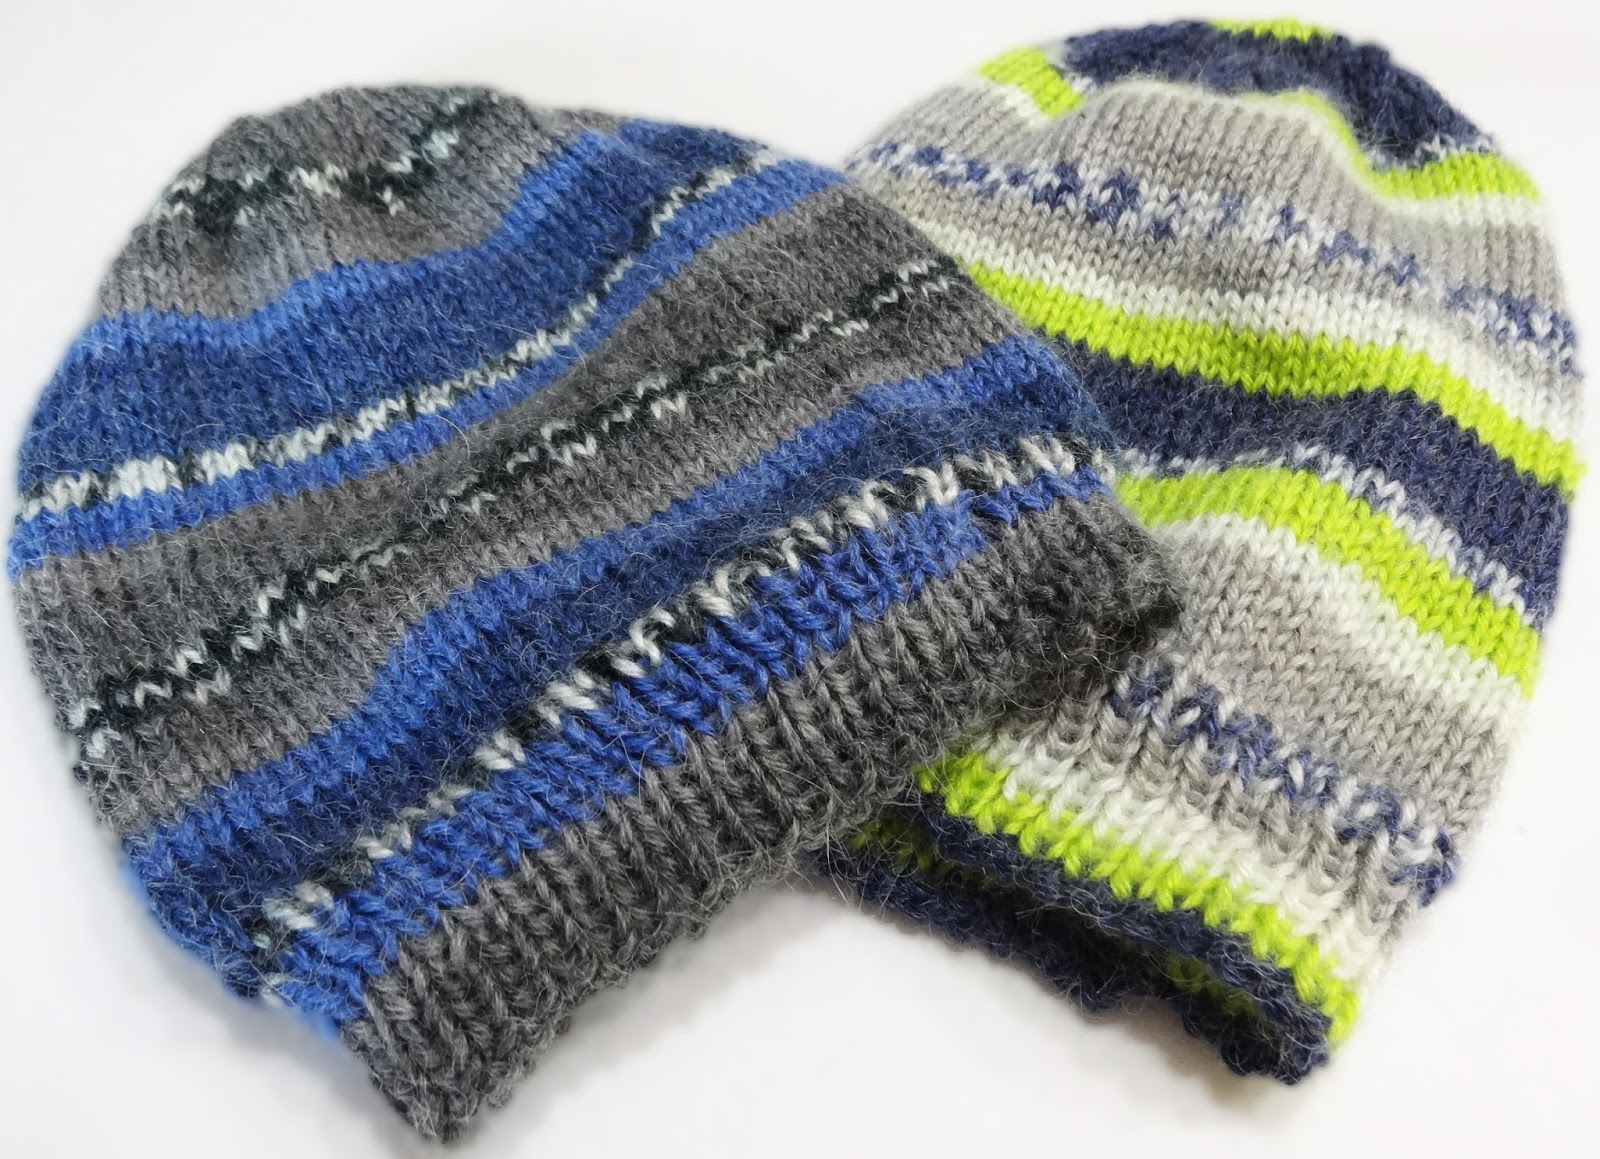 Knitting Up A Storm: 2-at-a-time fair isle gift hats